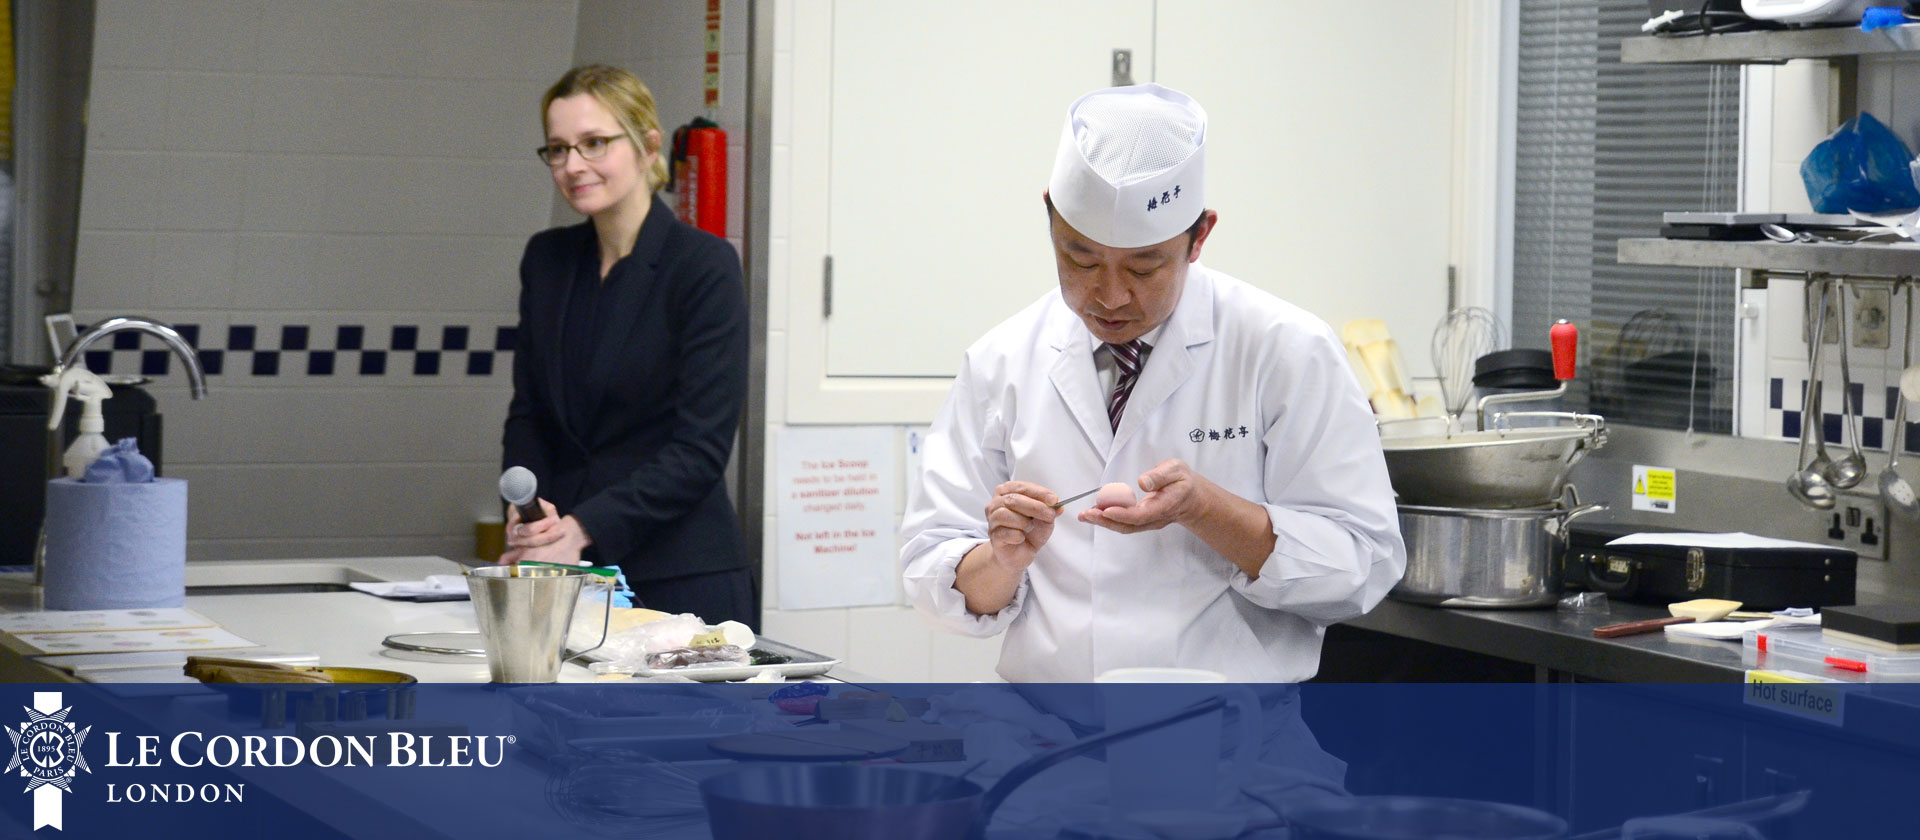 Le Cordon Bleu London Guest Chef Demonstration - Takeshi Inoue